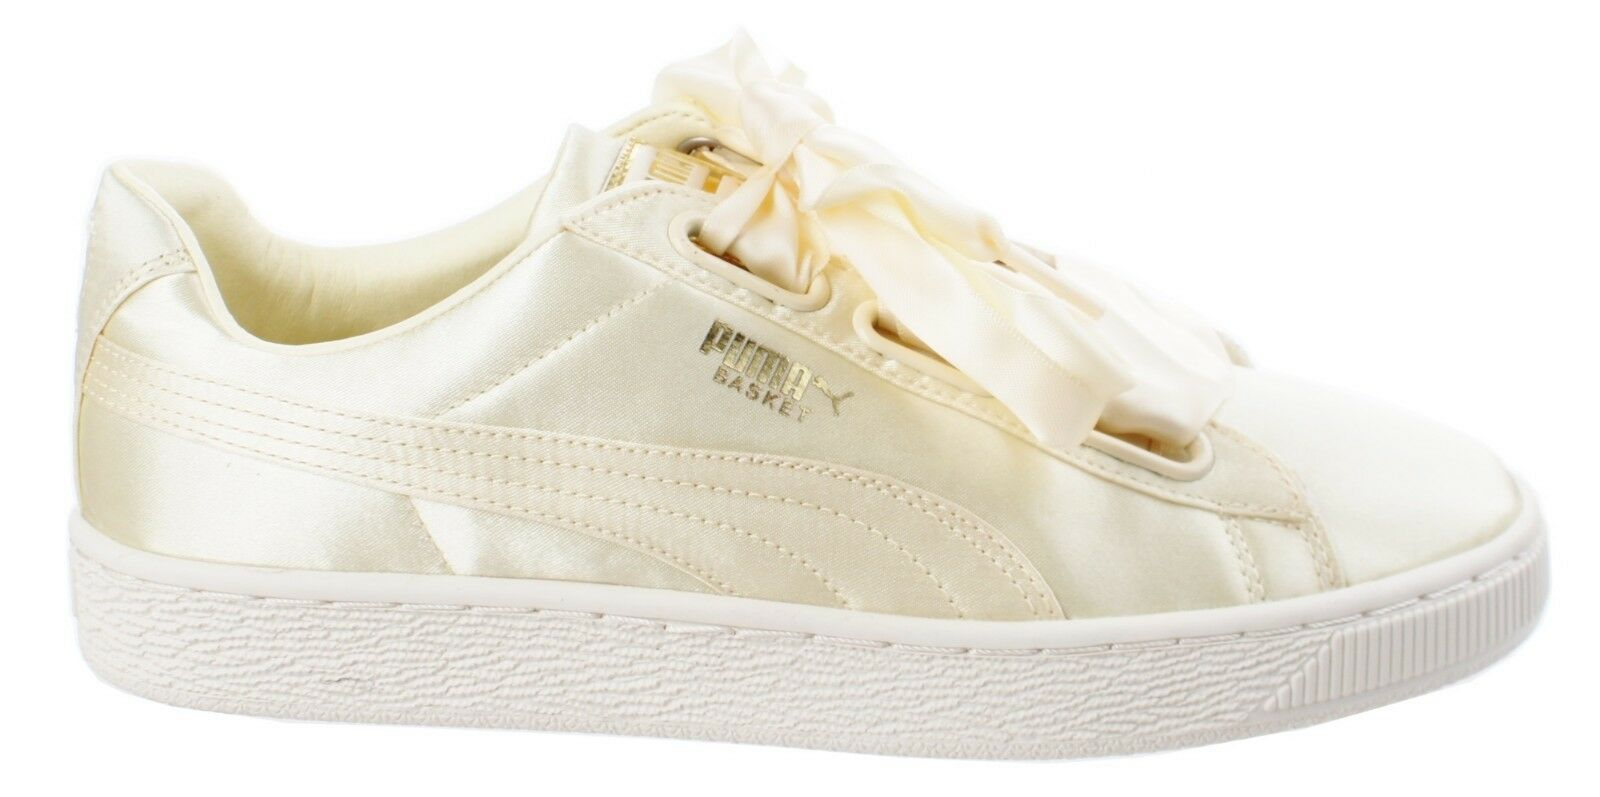 efe24820385b6 Puma Basket Basket Basket Heart Satin Transparent jaune-Or-Whisper blanc  baskets Femmes 866c71